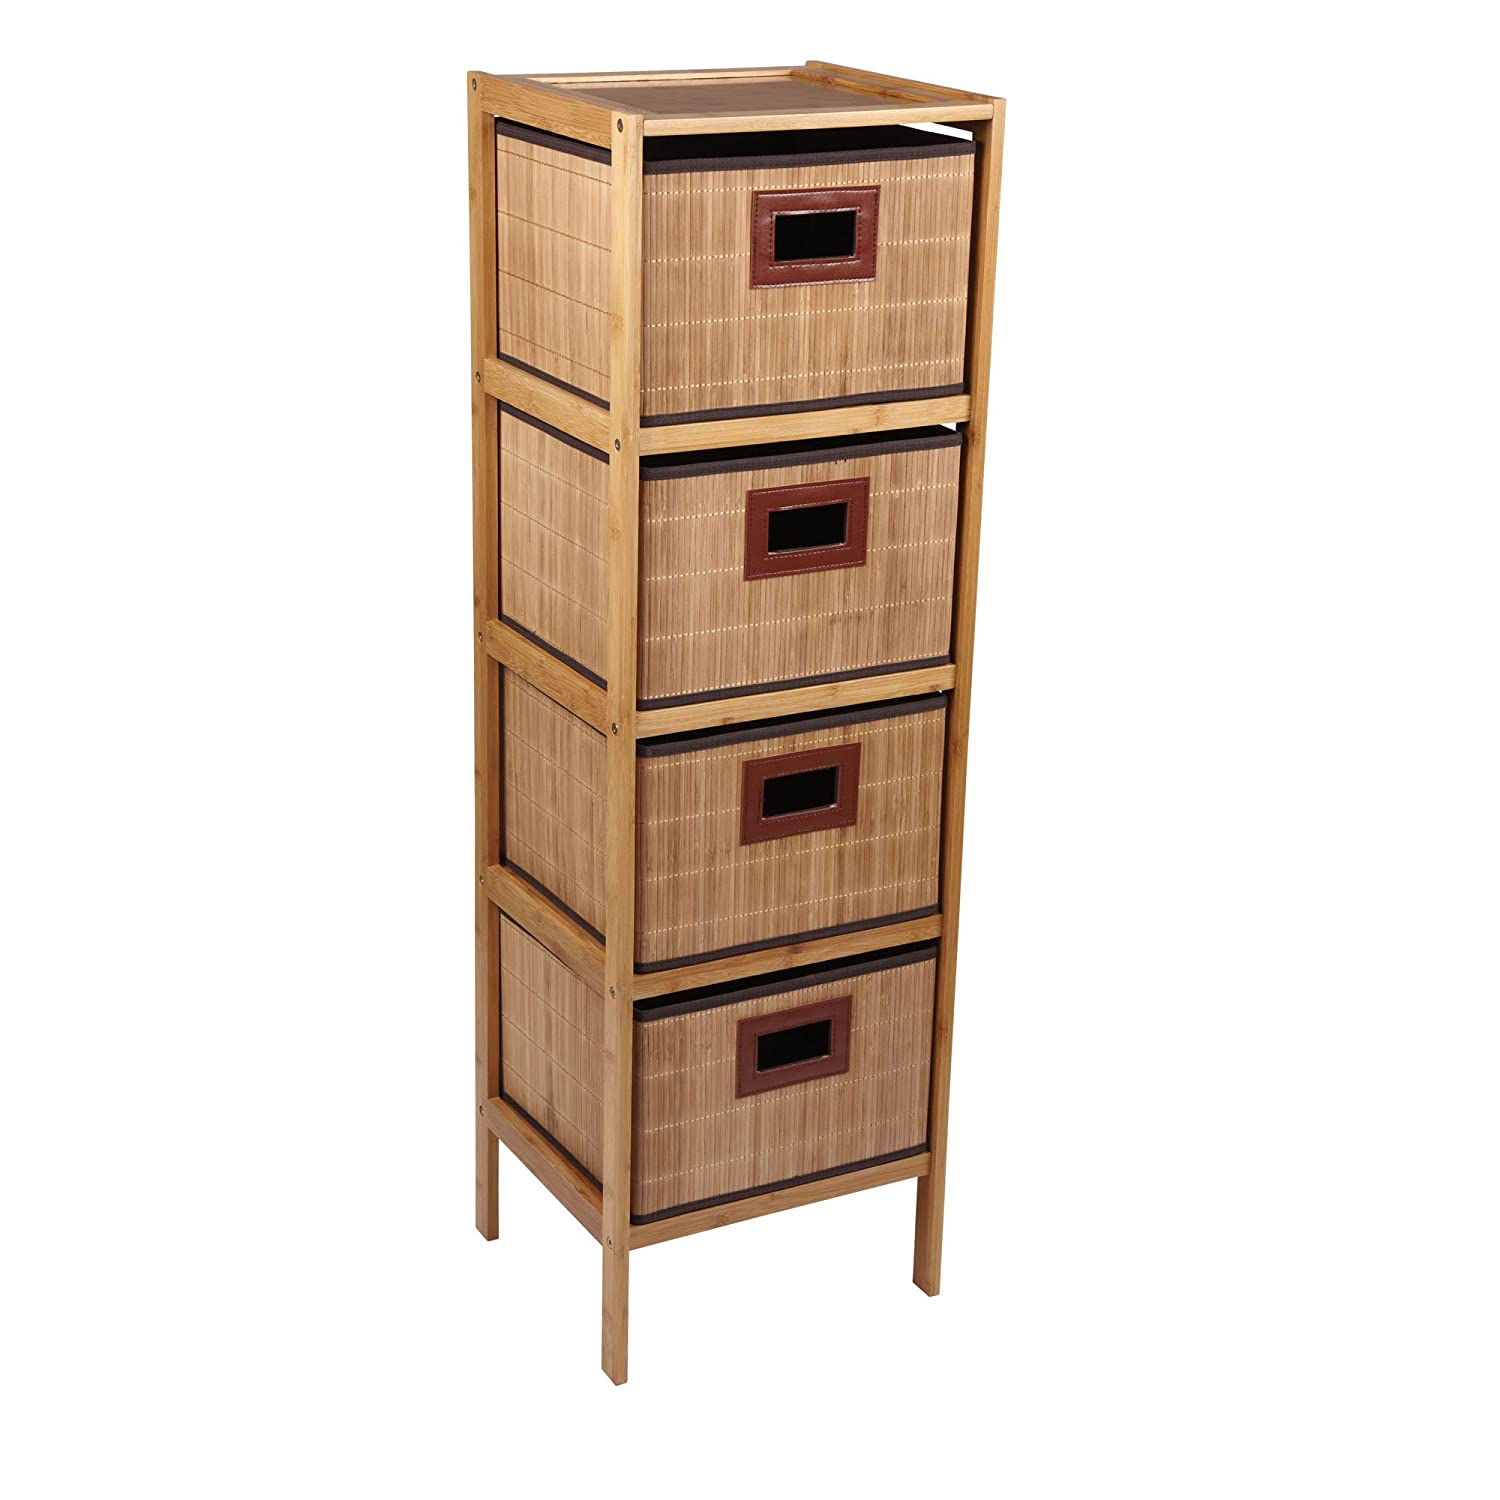 Beau Amazon.com: Household Essentials Bamboo 4 Drawer Storage Tower, Natural:  Home U0026 Kitchen